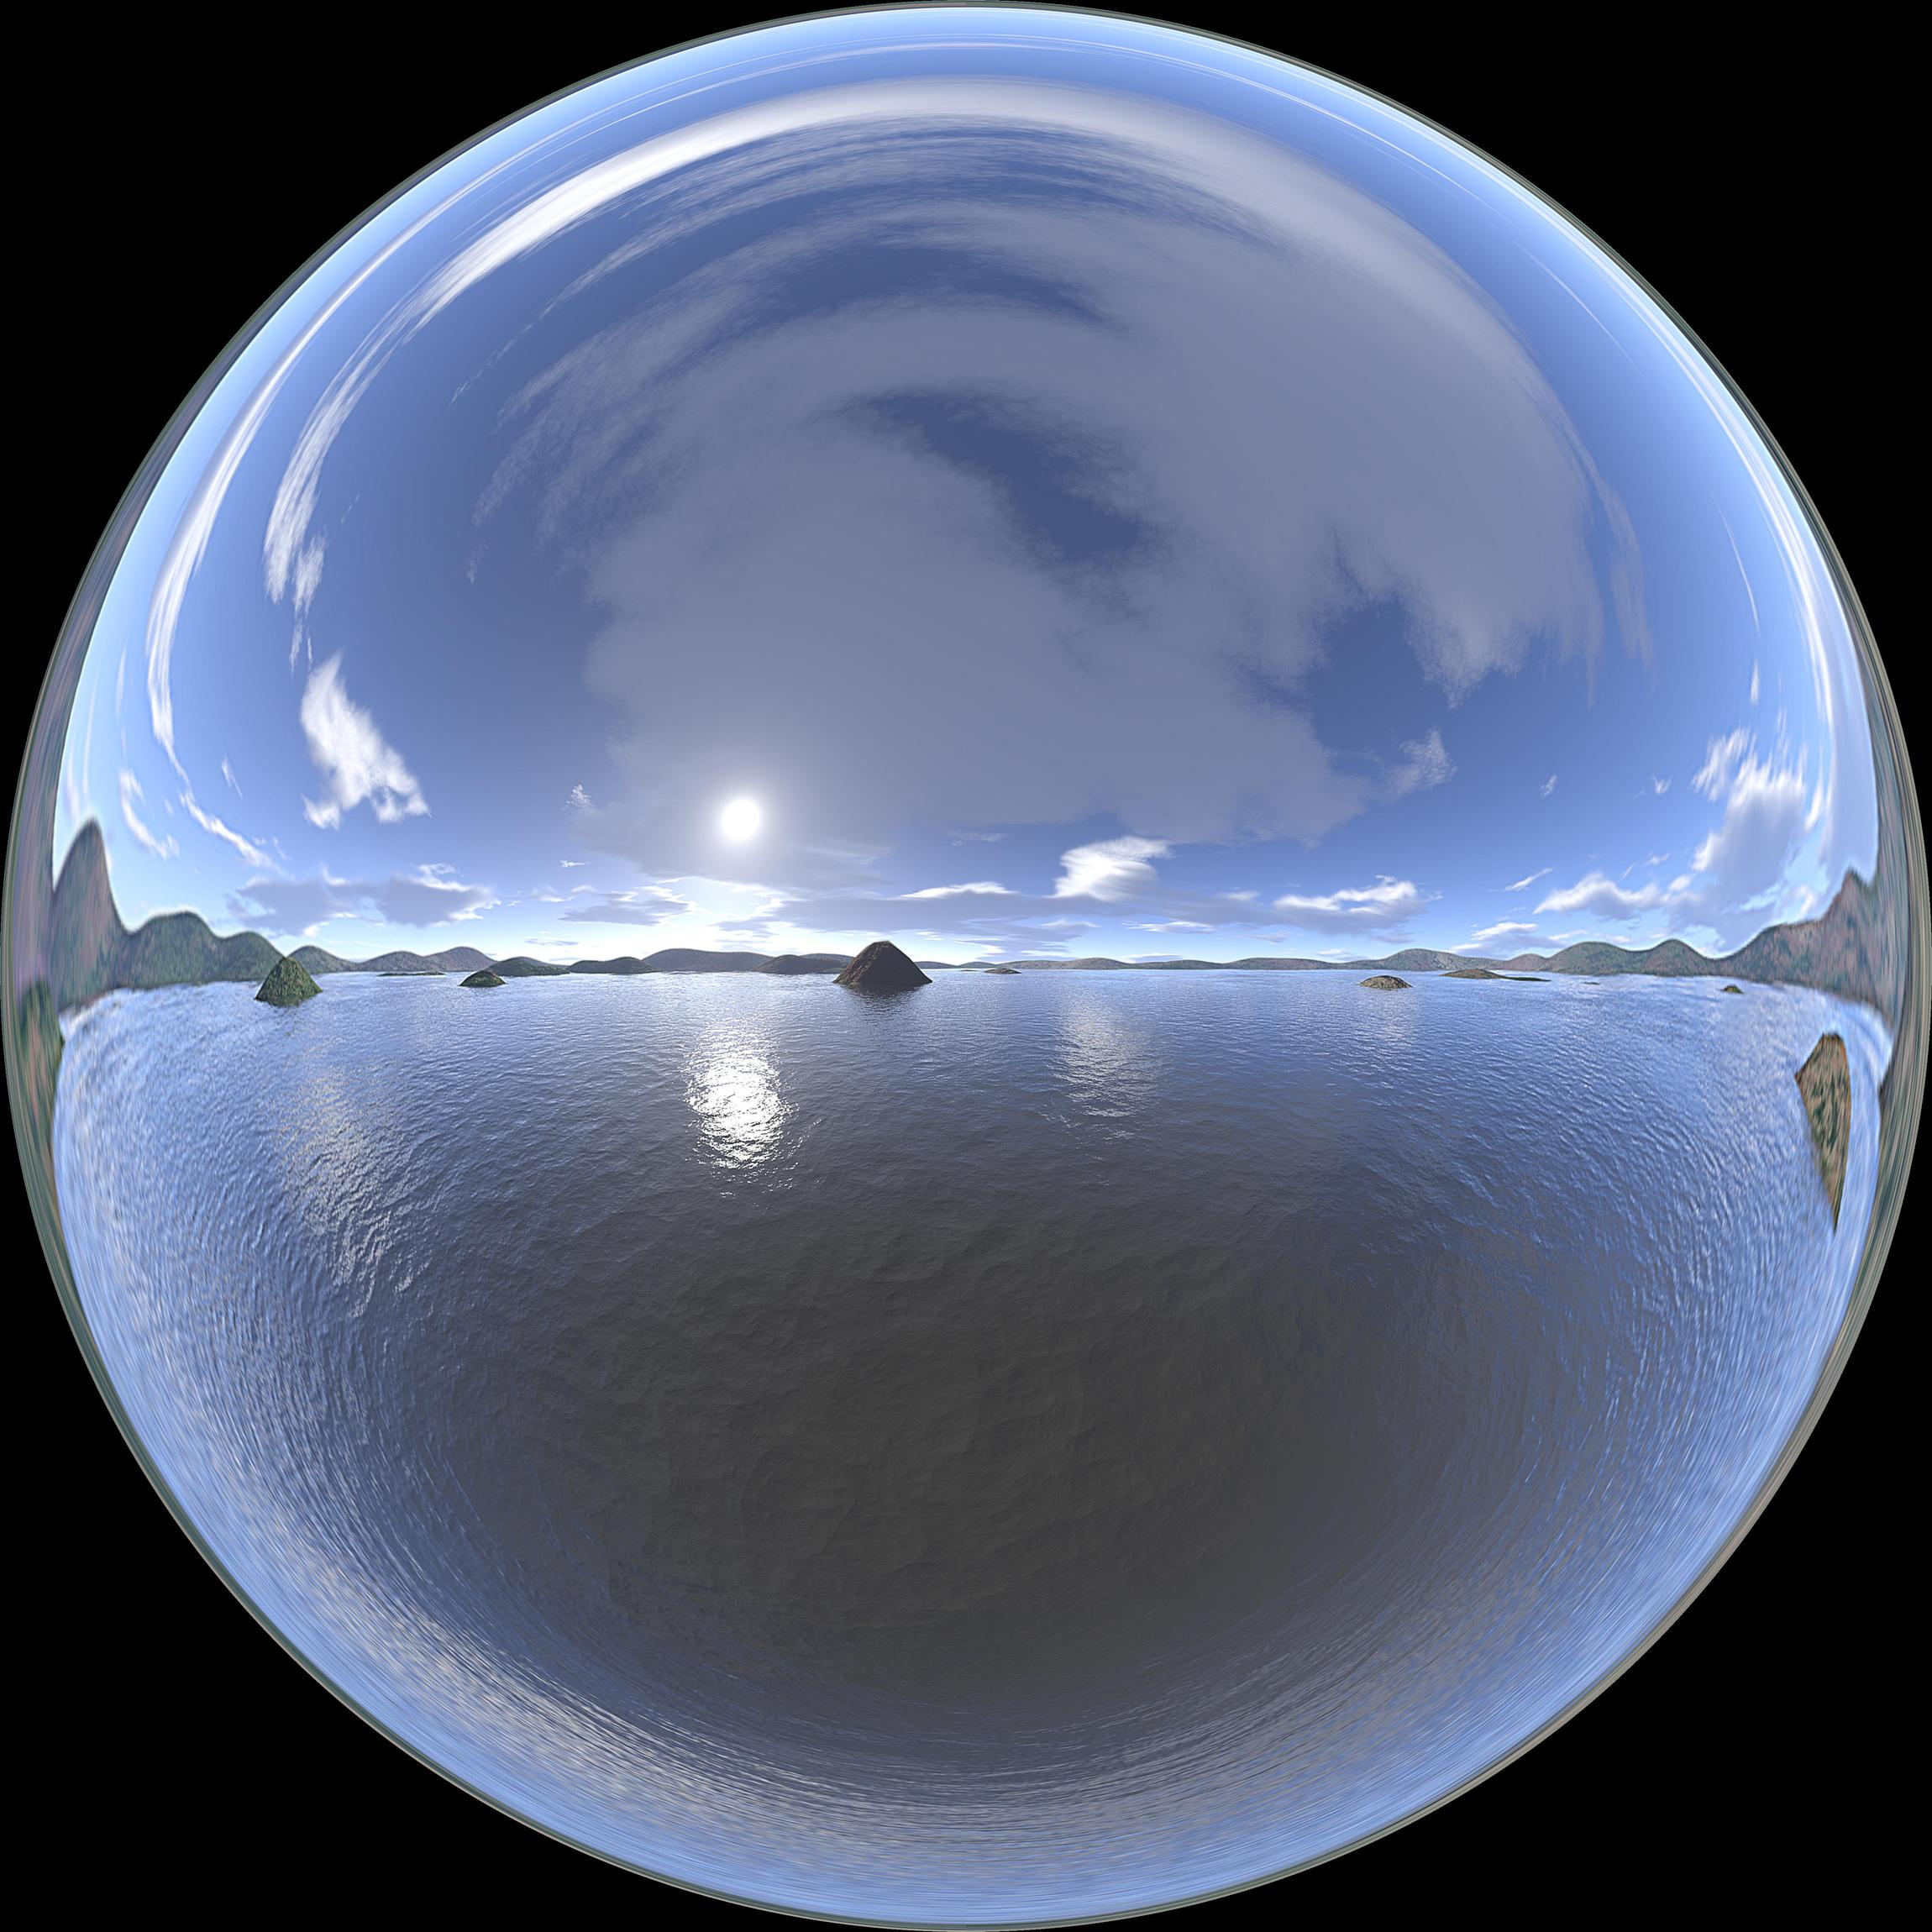 Environmental Texture Mirror Ball Materials And